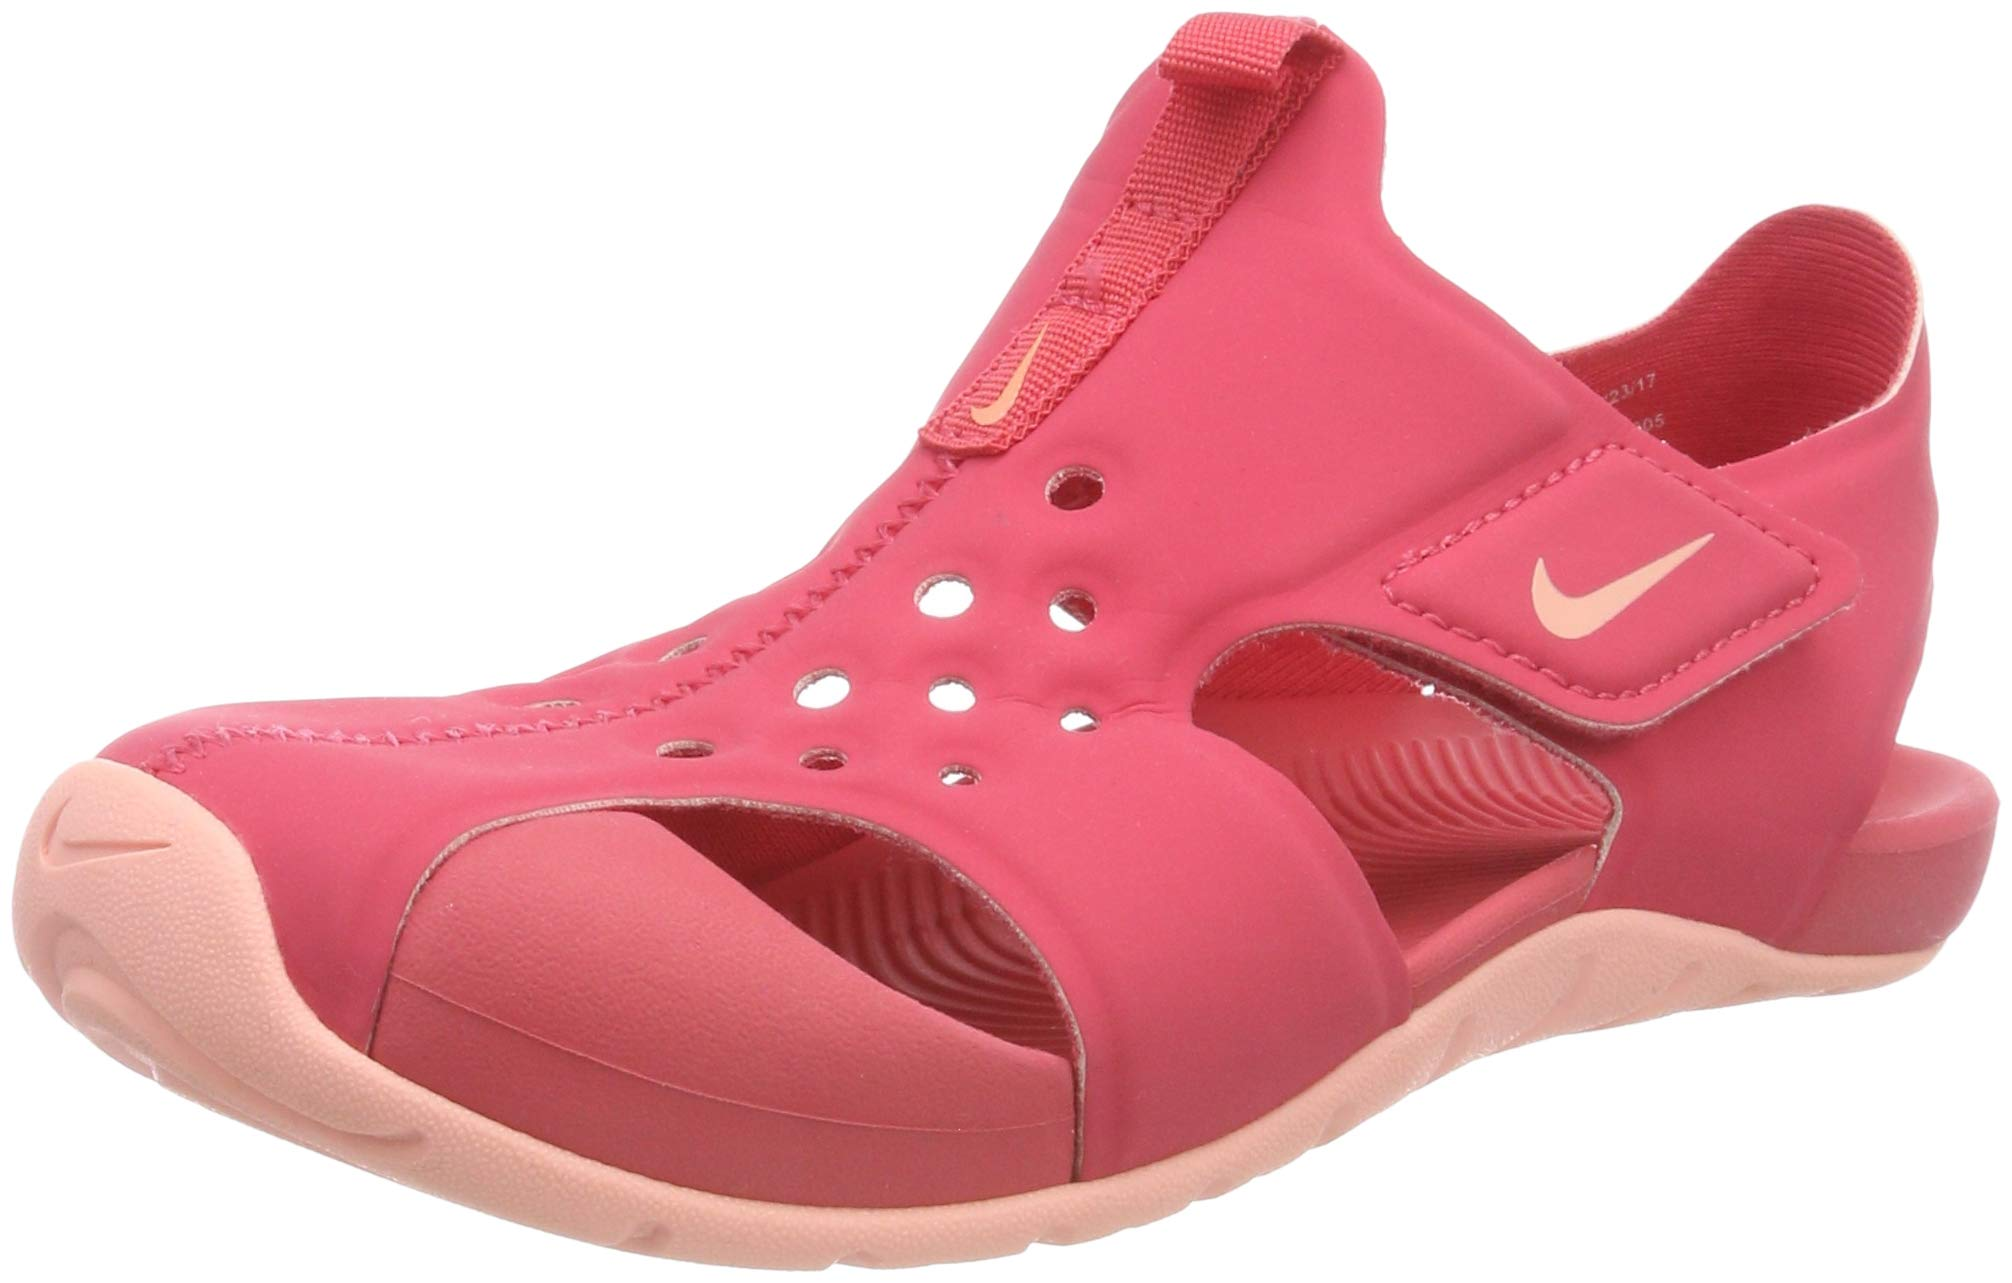 Nike Sunray Protect 2 (PS) Boys Fashion-Sneakers 943828-600_1Y - Tropical Pink/Bleached Coral